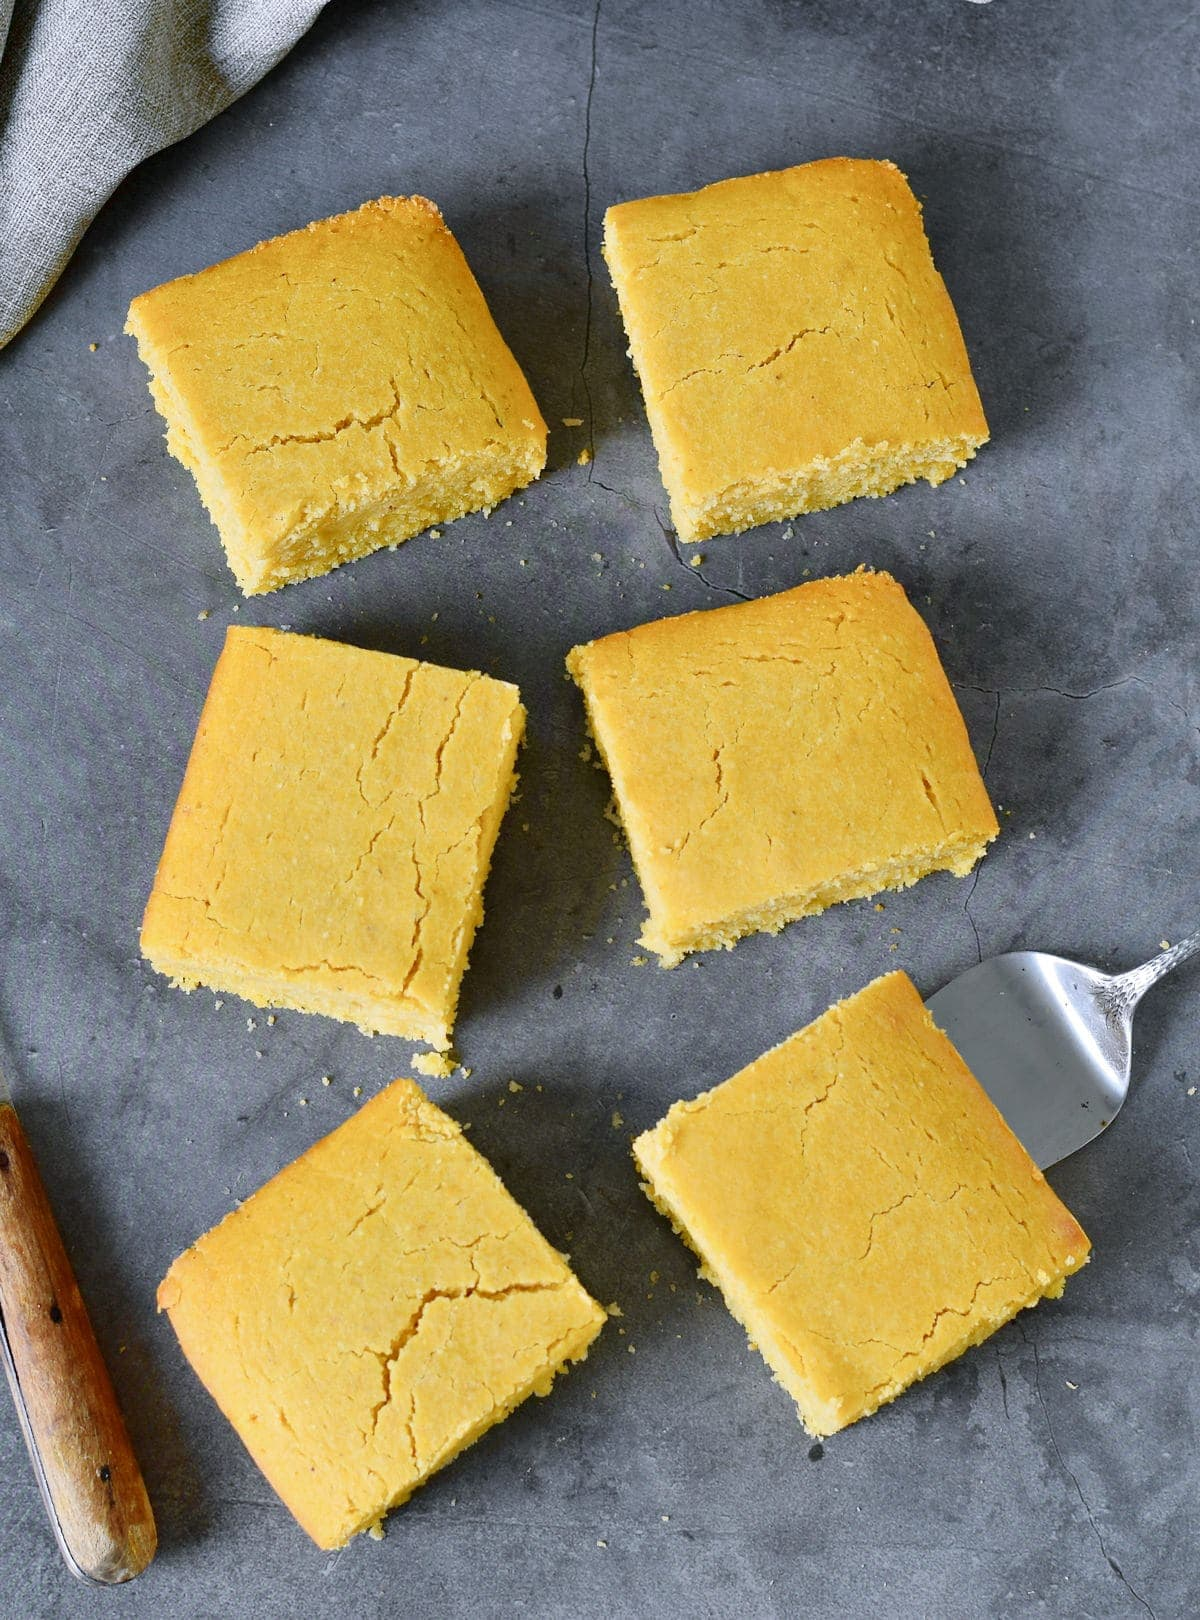 6 slices of corn bread from above